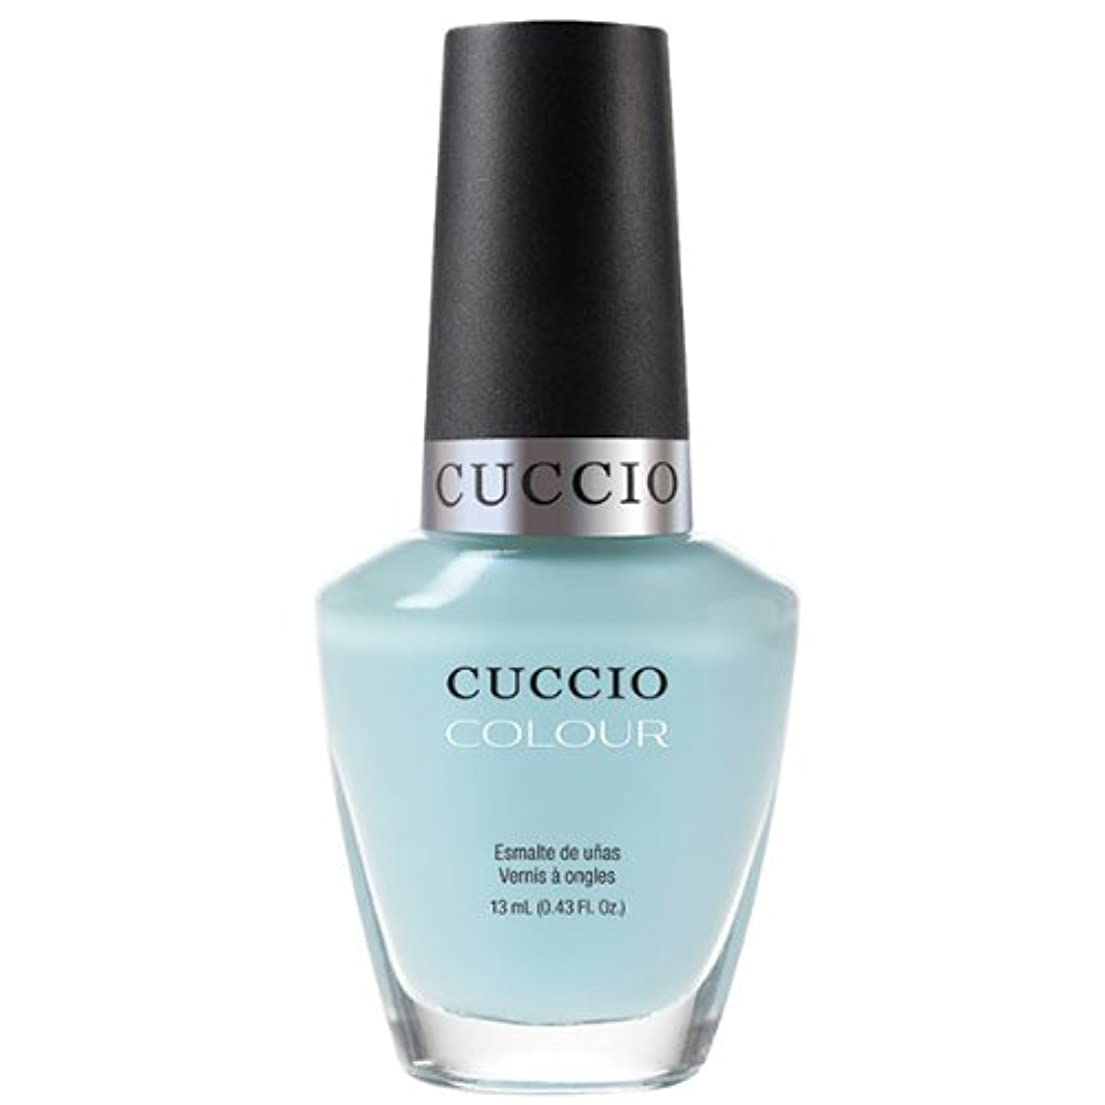 Cuccio Colour Gloss Lacquer - Meet Me in Mykonos - 0.43oz / 13ml